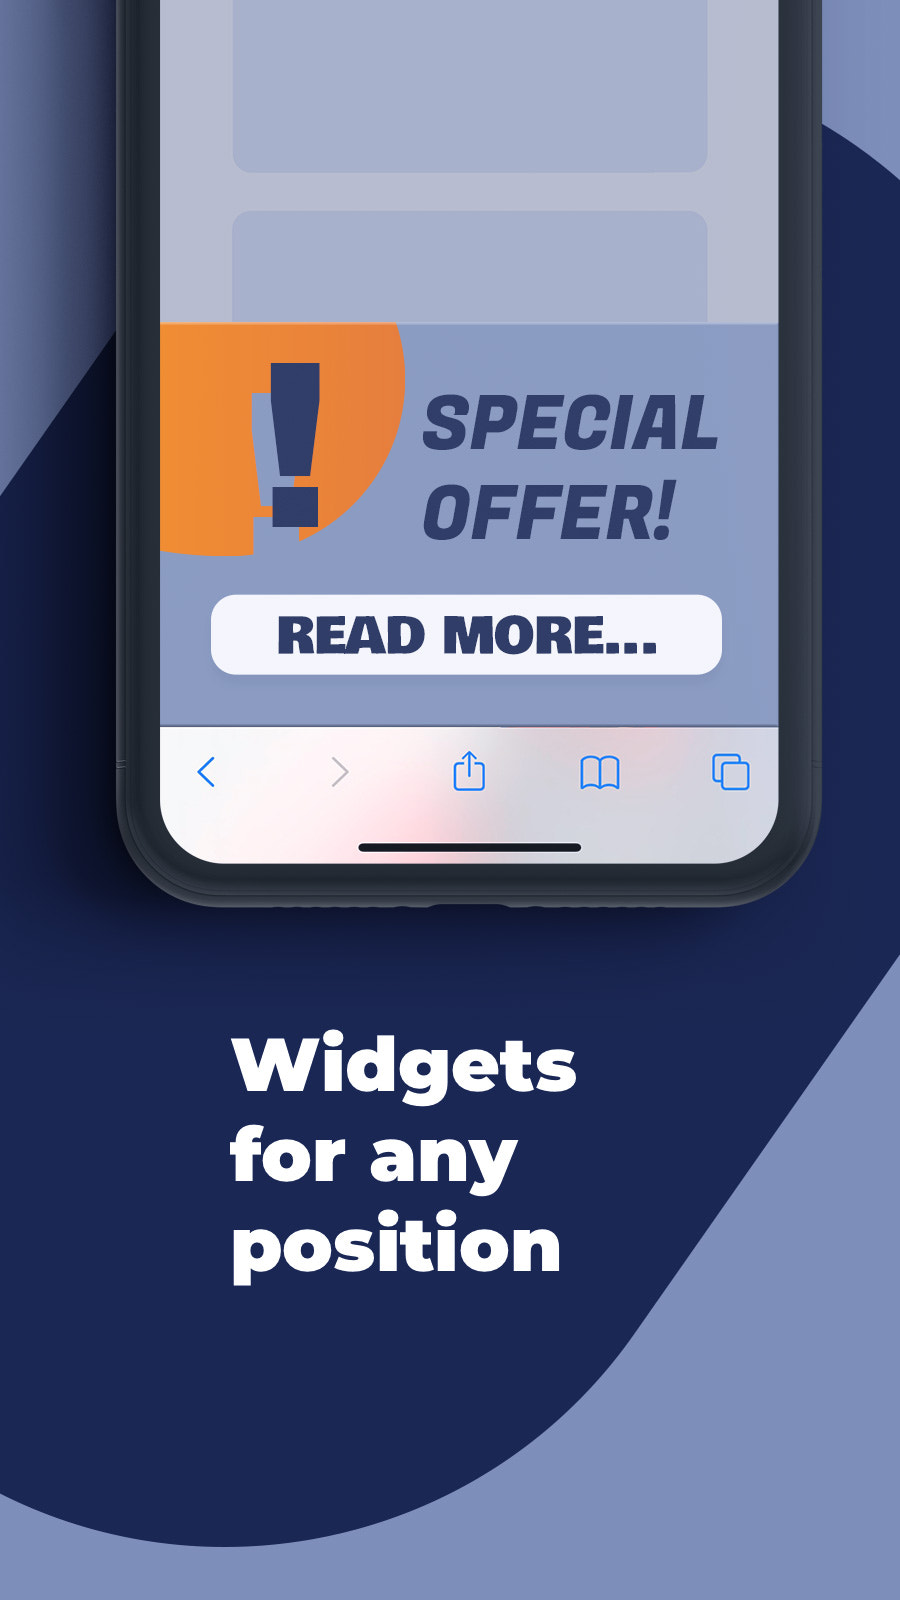 Widgets for any position